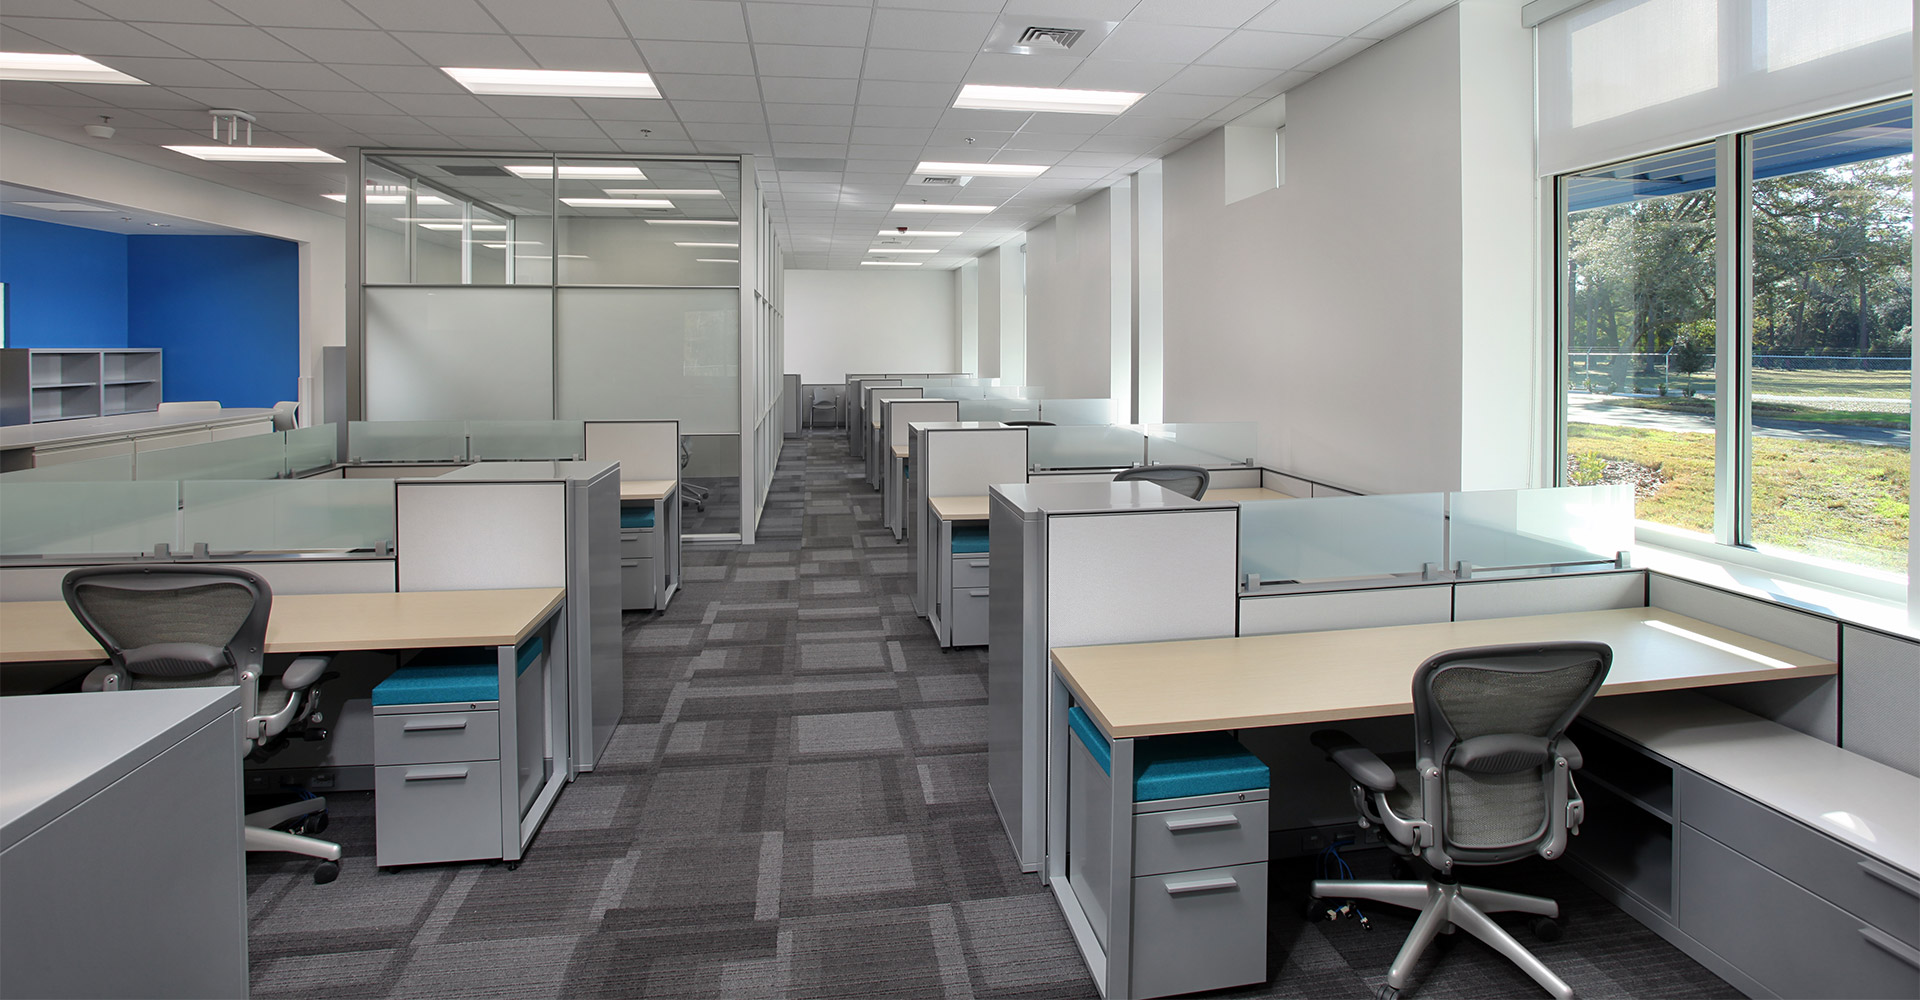 Cubicles in chemical lab.